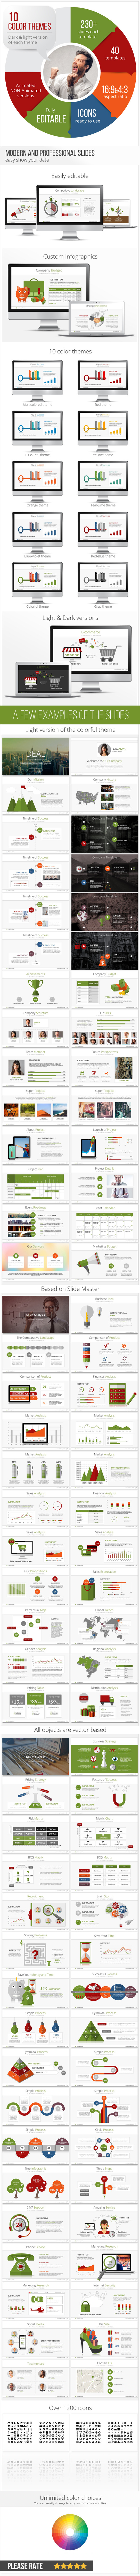 GraphicRiver Sales PowerPoint Presentation Template 11153291